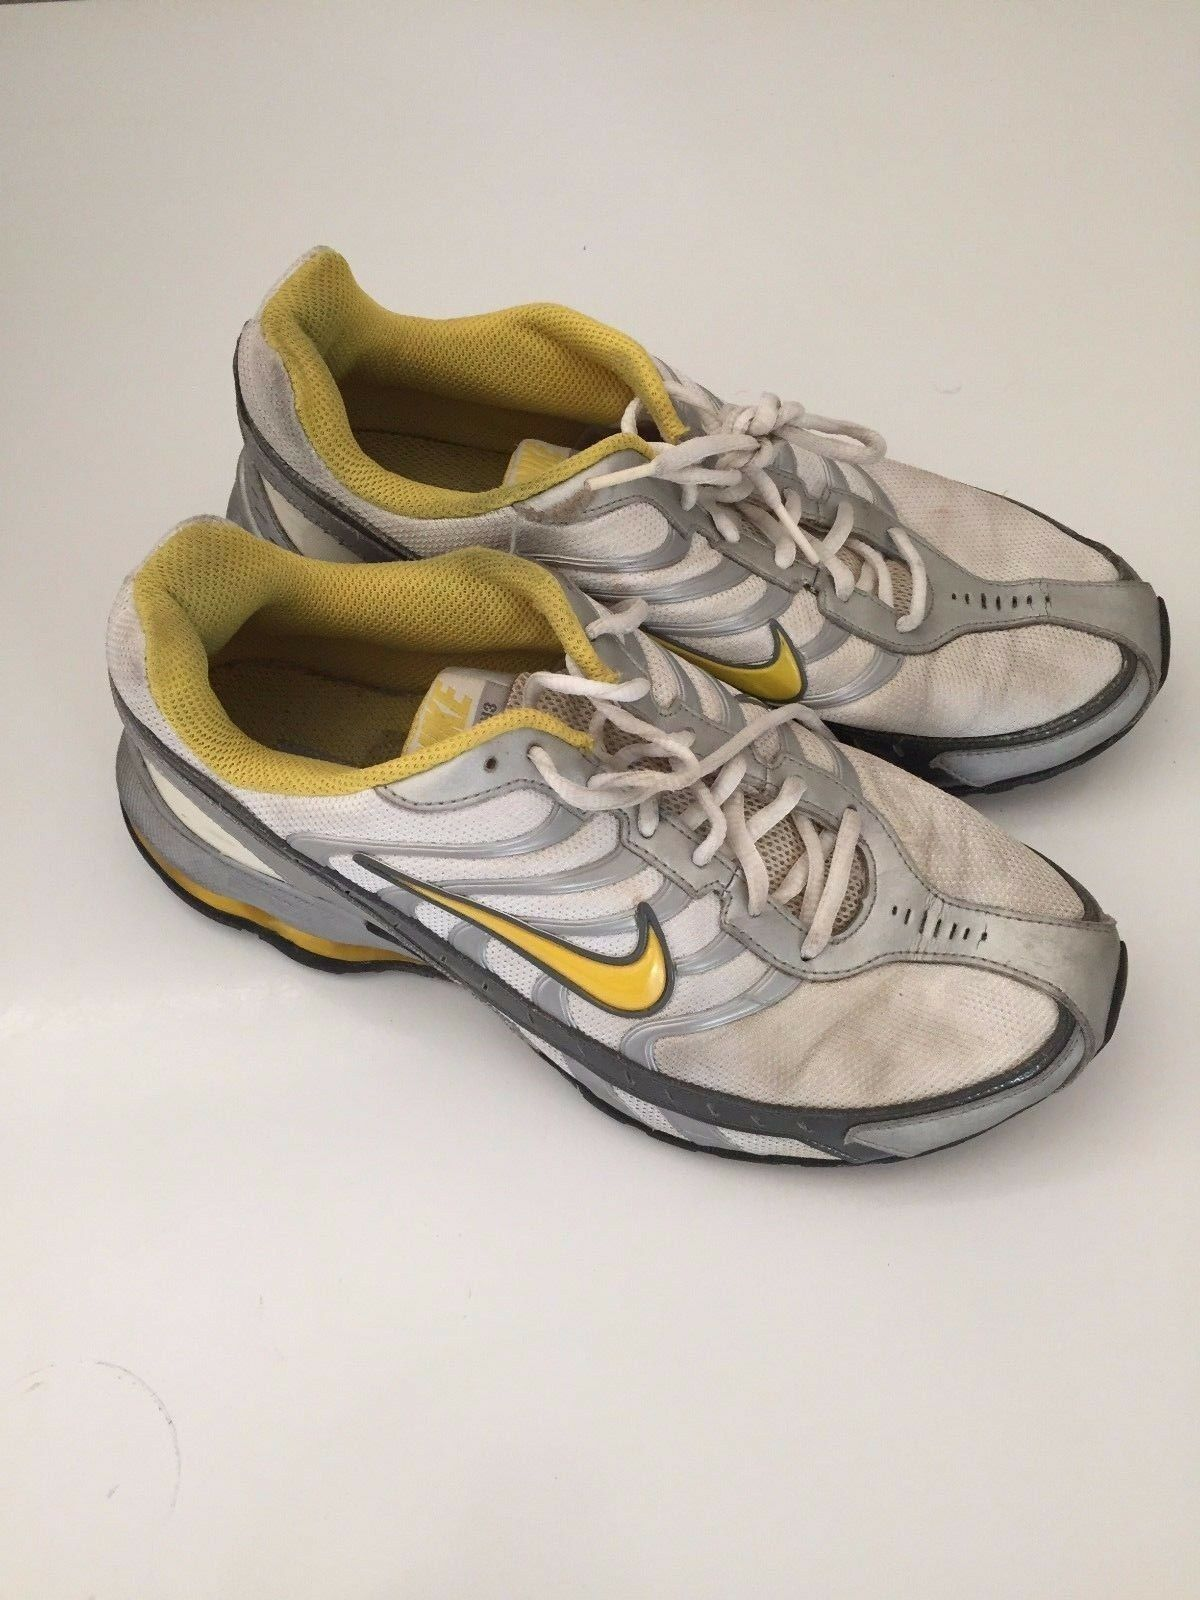 info for 69c6a 72012 ... Nike REAX RUN 3 Women s Running Running Running Shoes Size 10 Athletic  Sneakers Work out Yellow ...